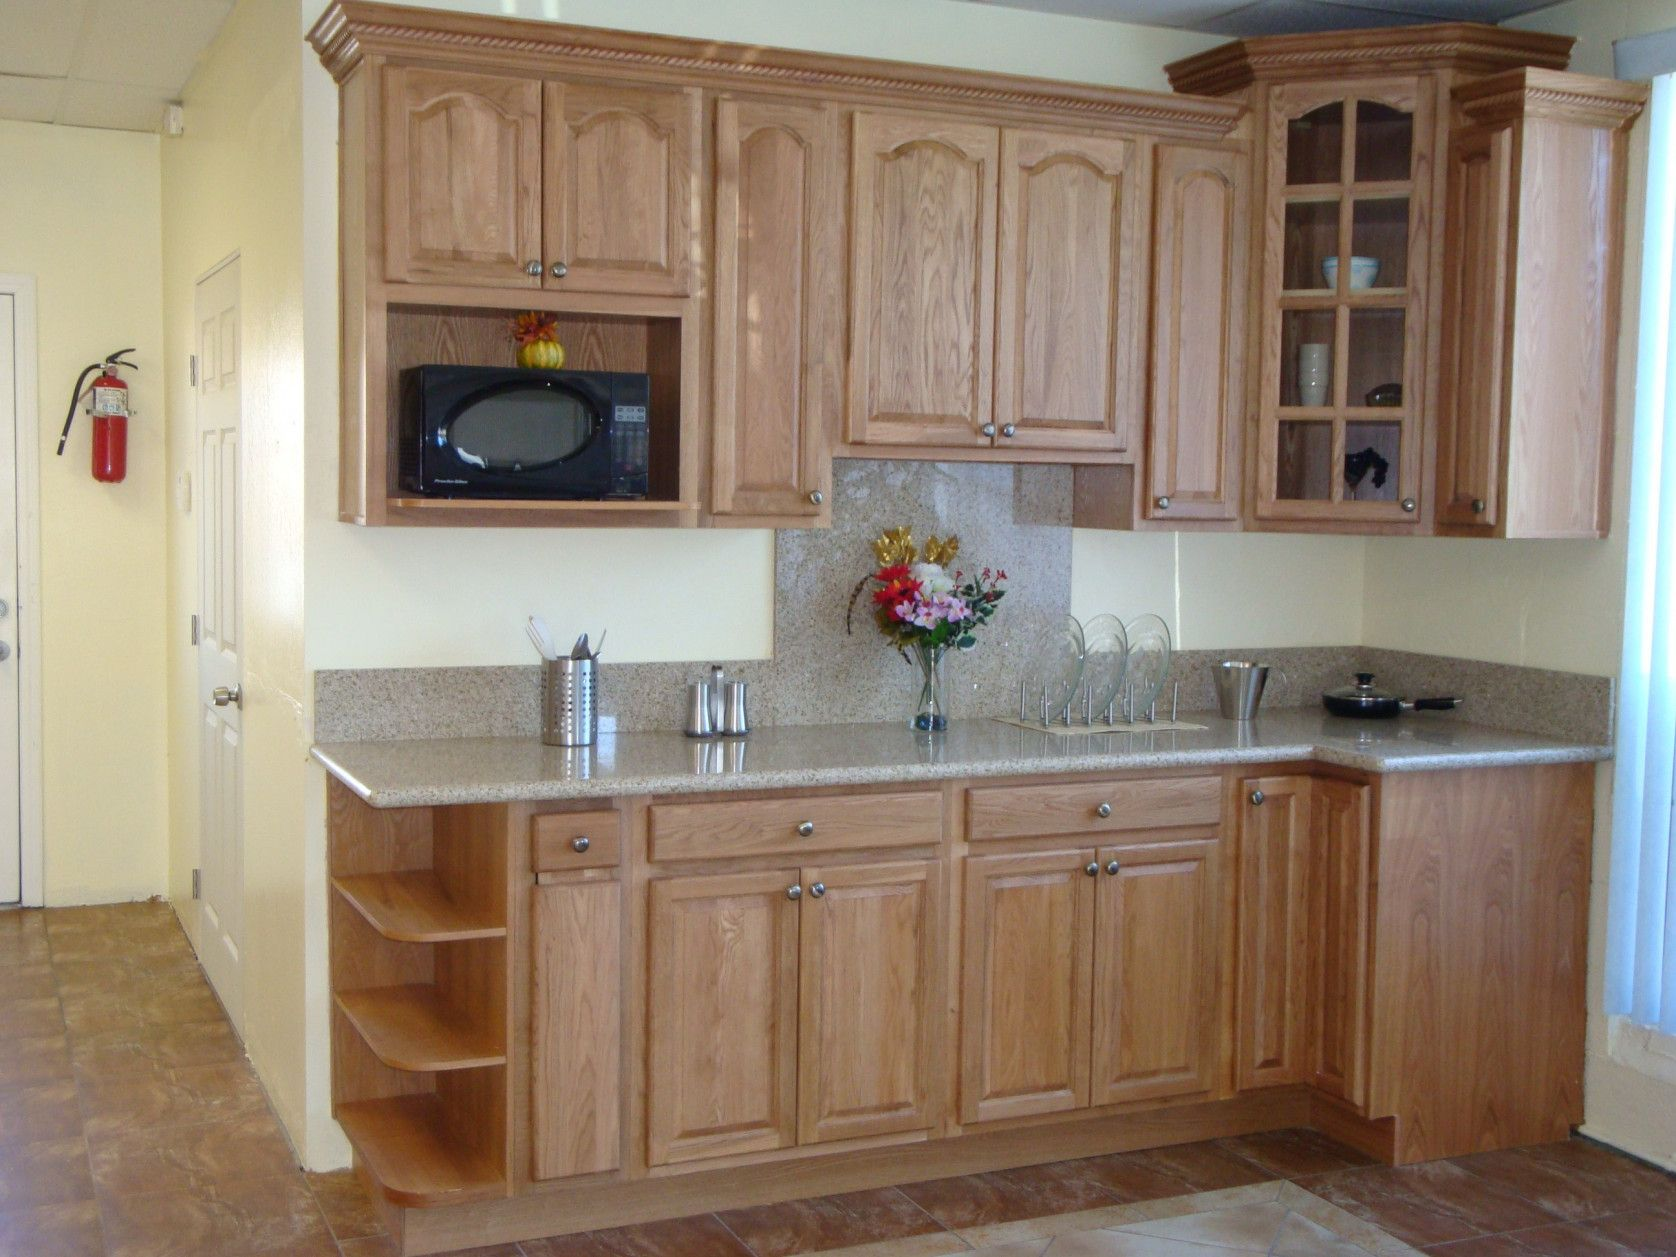 2019 Oak Cabinets For Sale Backsplash For Kitchen Ideas Check More At Http Www Plan Unfinished Kitchen Cabinets Rustic Kitchen Cabinets Unfinished Cabinets